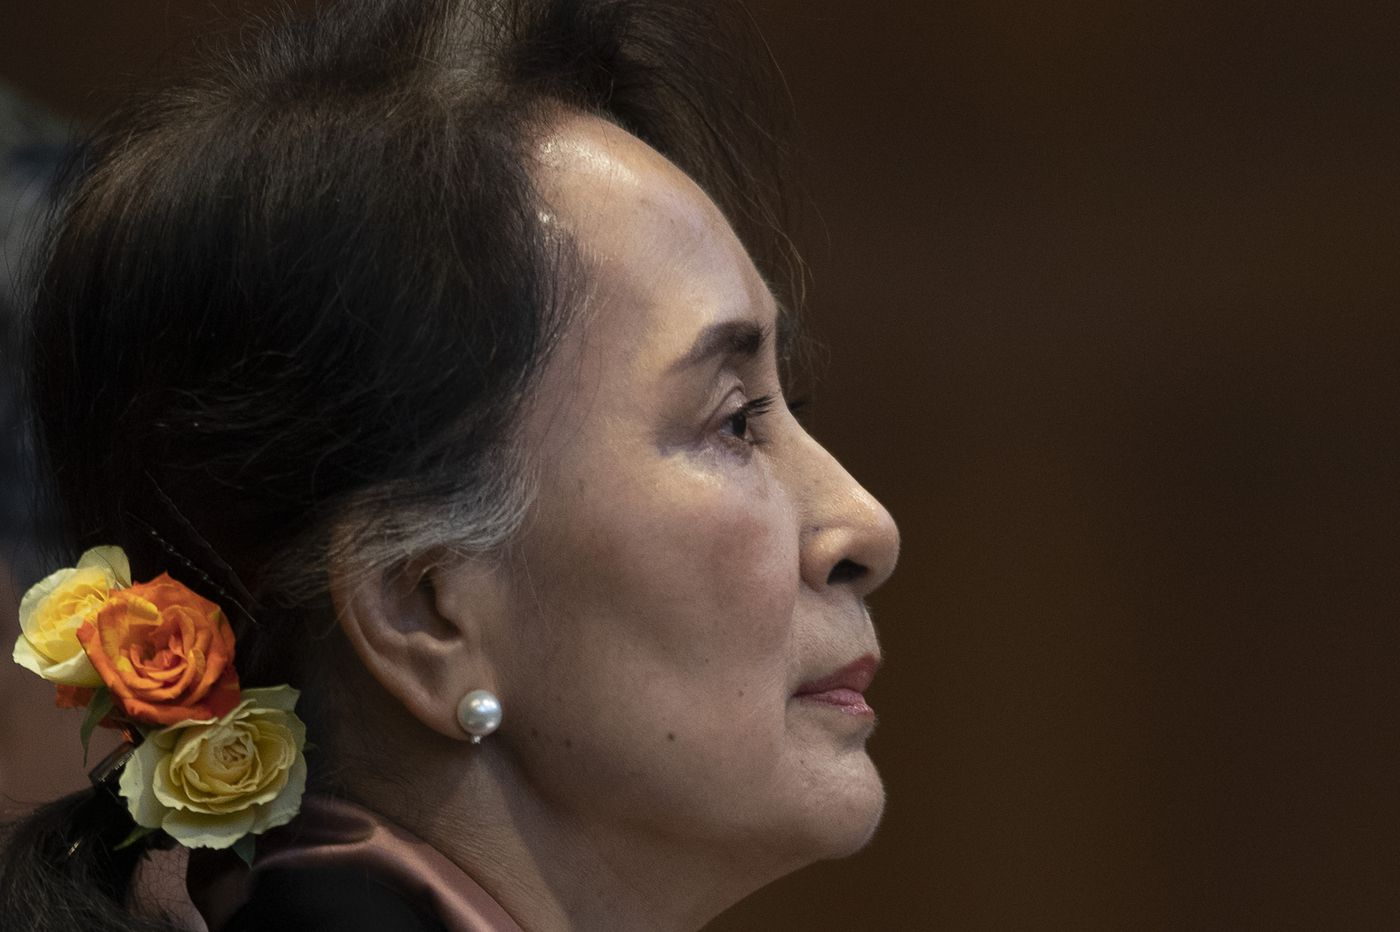 Aung San Suu Kyi, former democracy icon, defends Myanmar against genocide allegations